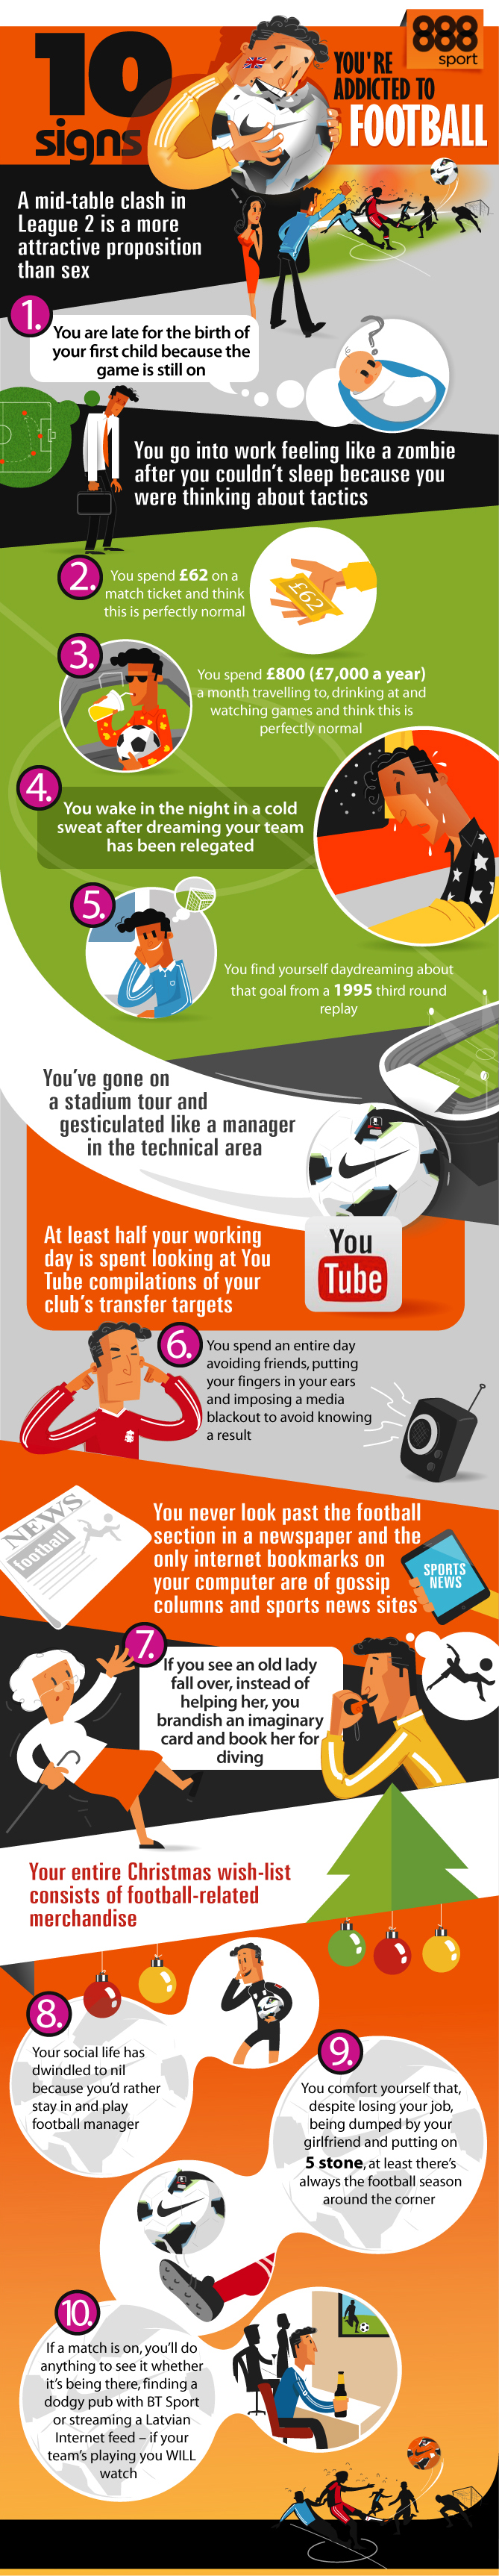 Funny Football Infographic